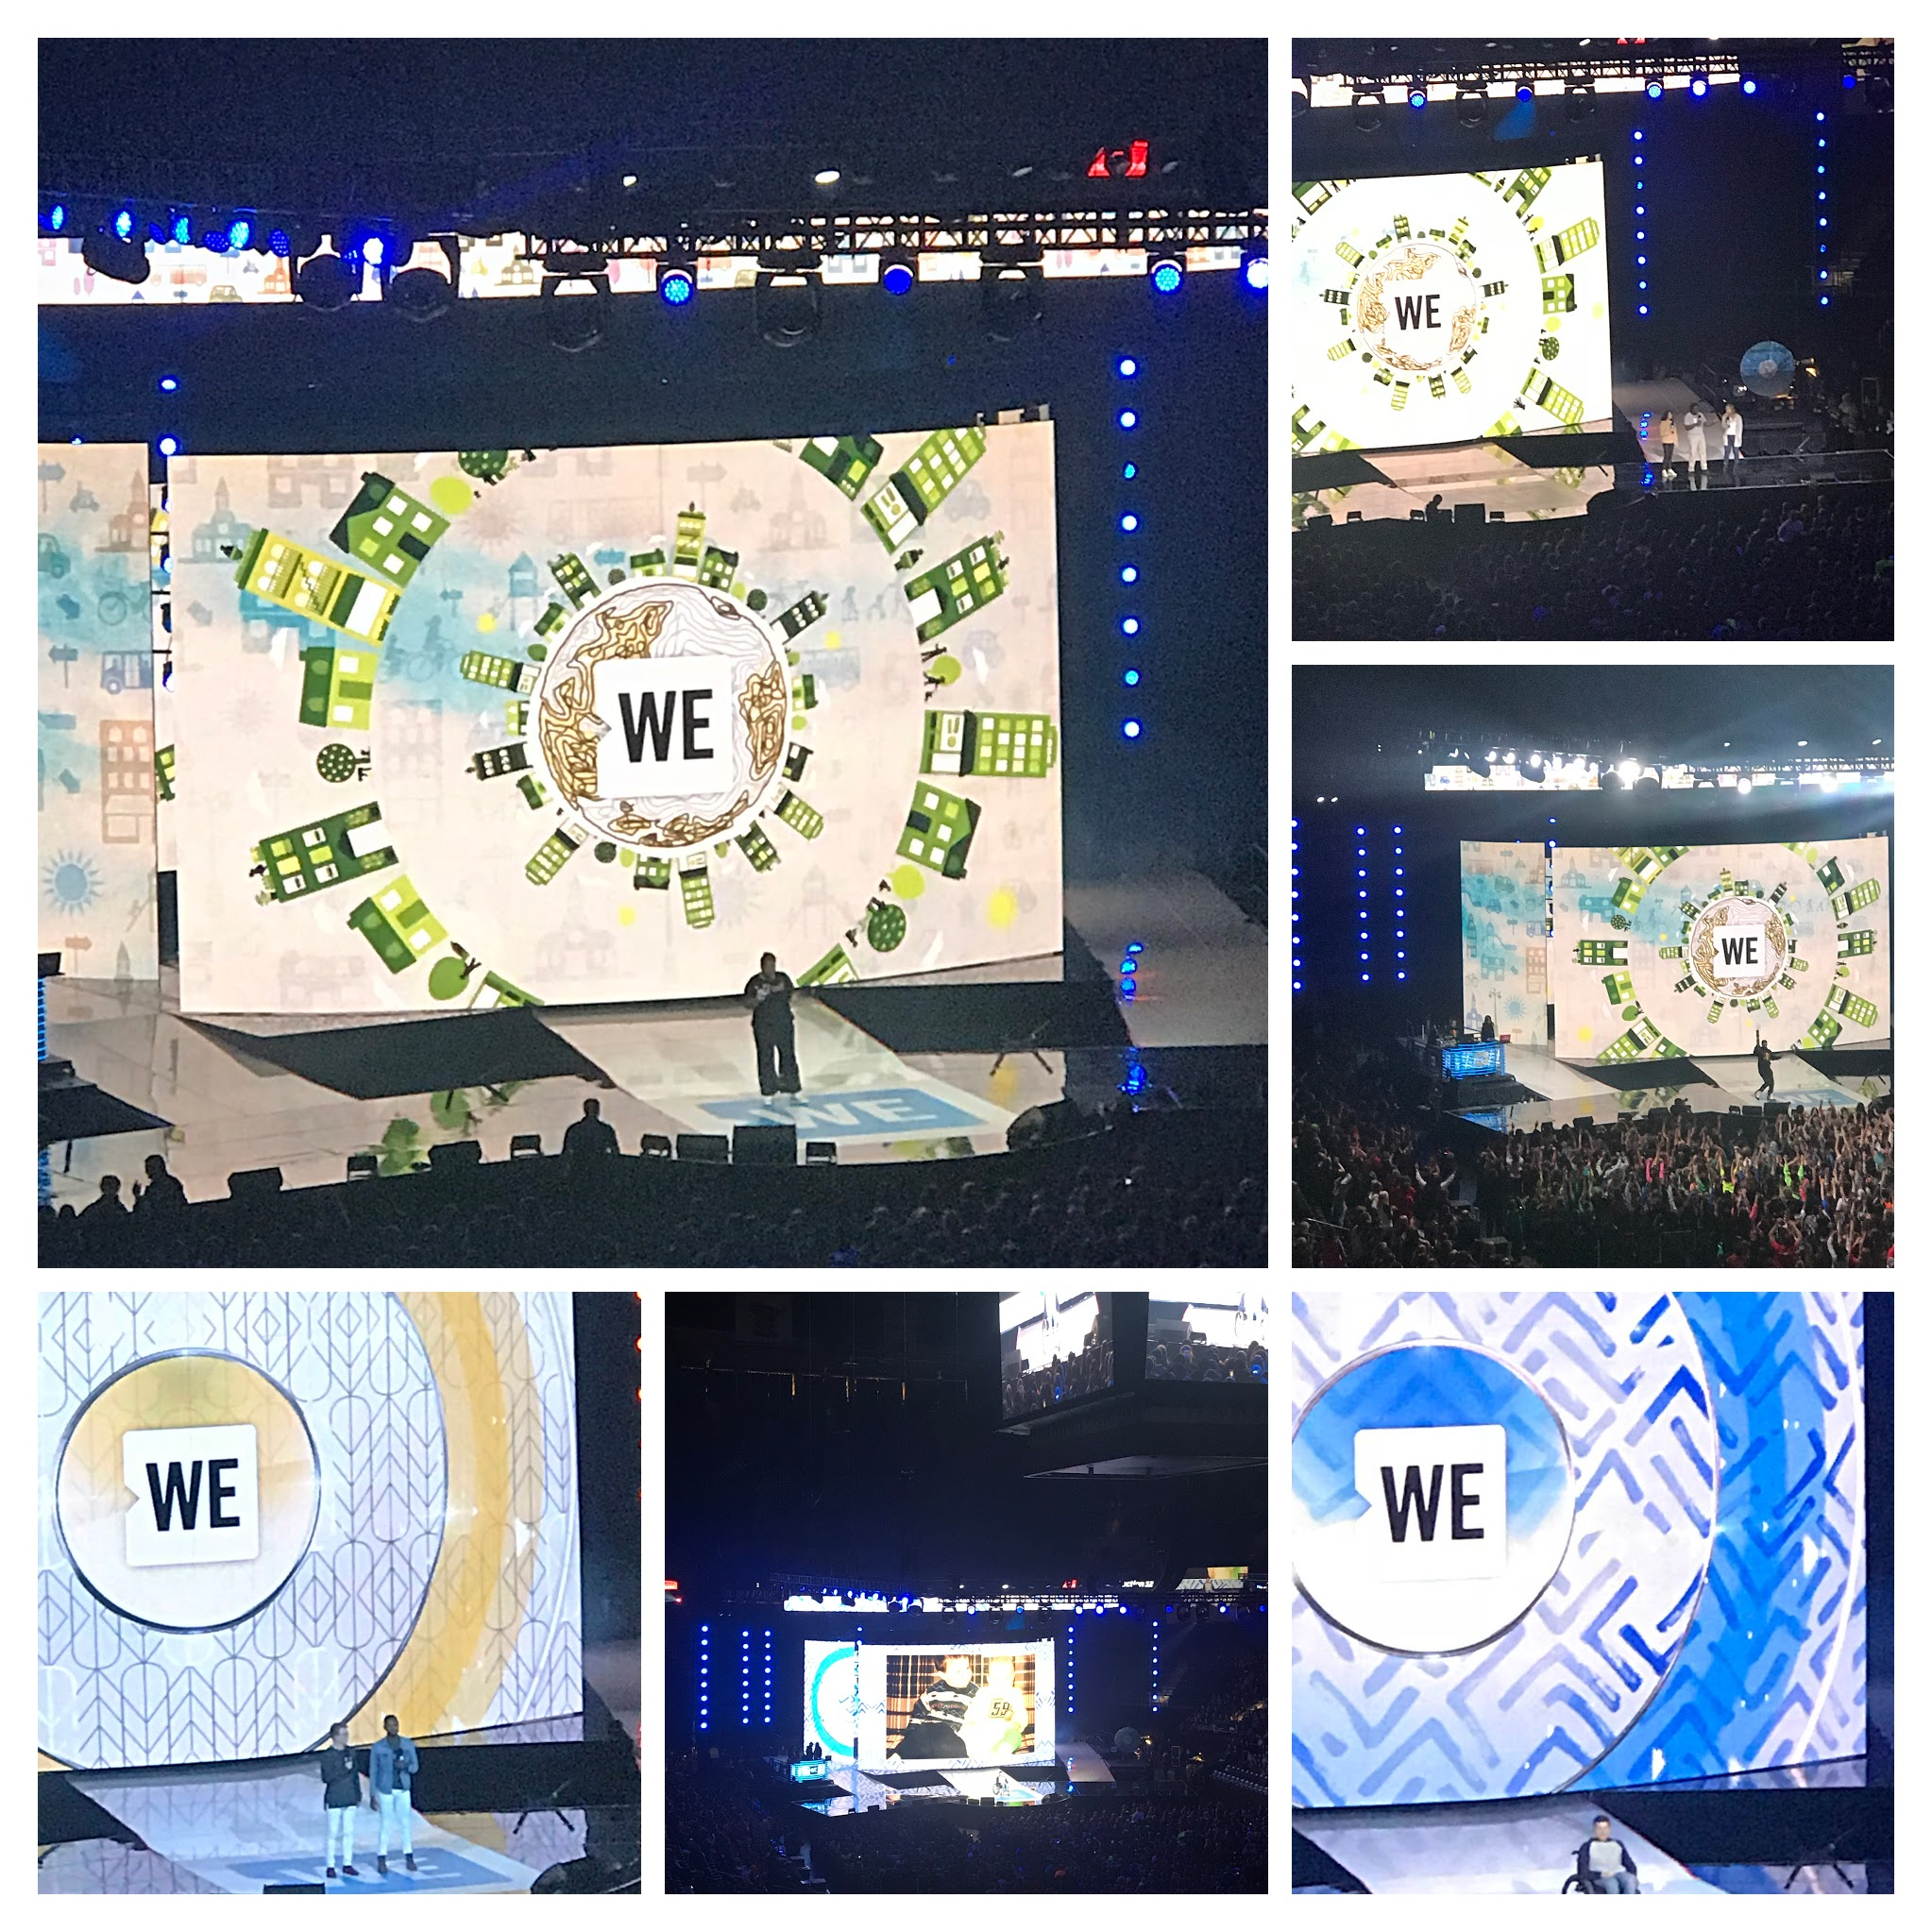 The big stage and all the celebrities and storytellers from WE Day MN 2017.